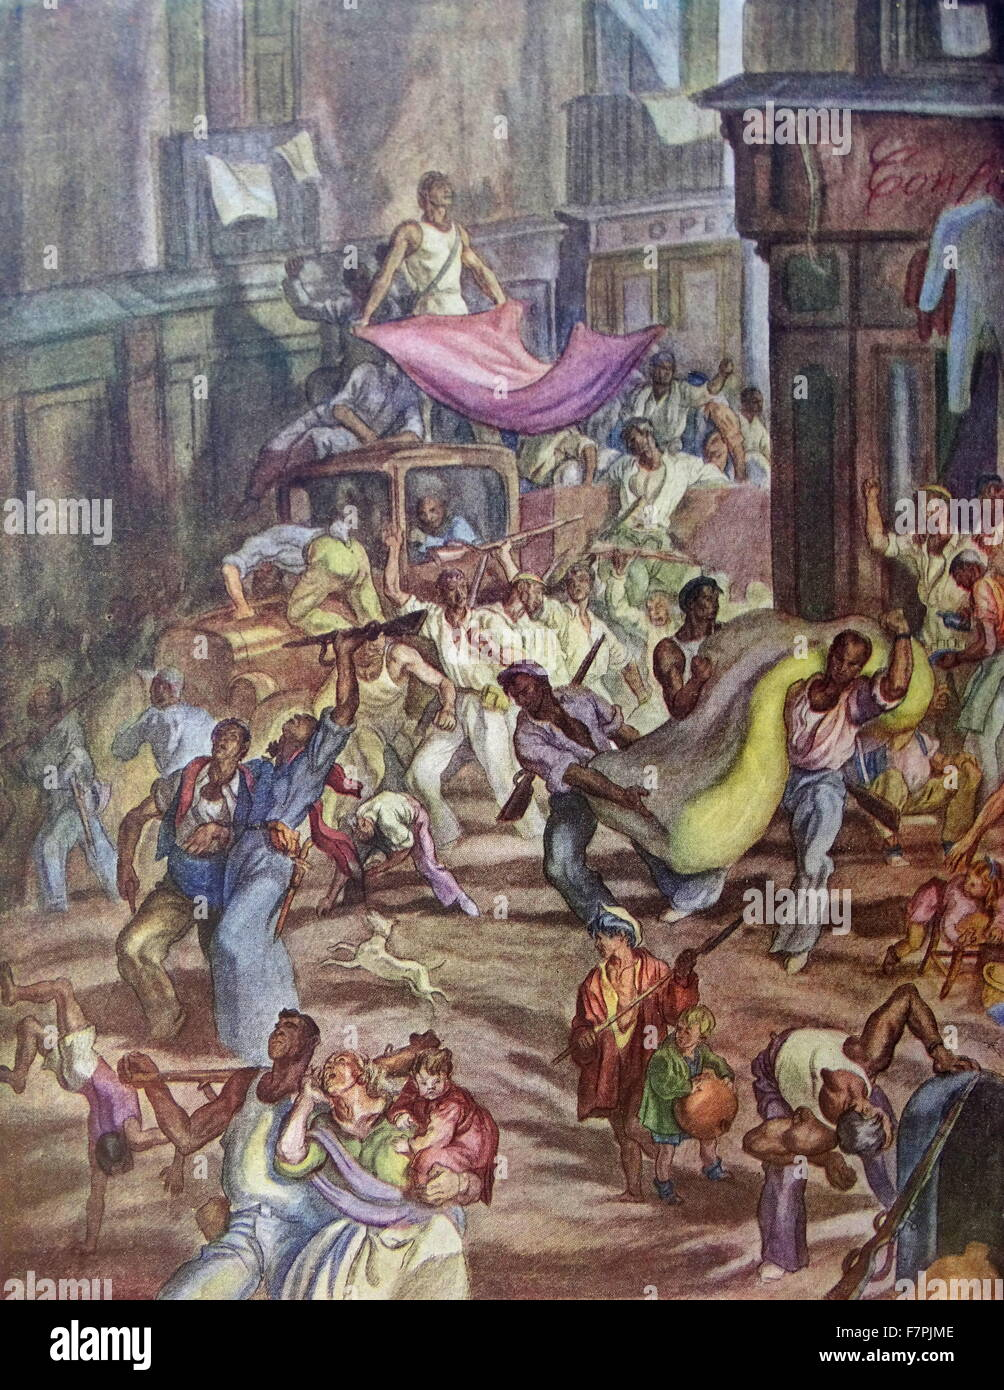 Illustration by Carlos Saenz De Tejada showing a drunken mob of anarchist looting homes in a Spanish city during - Stock Image